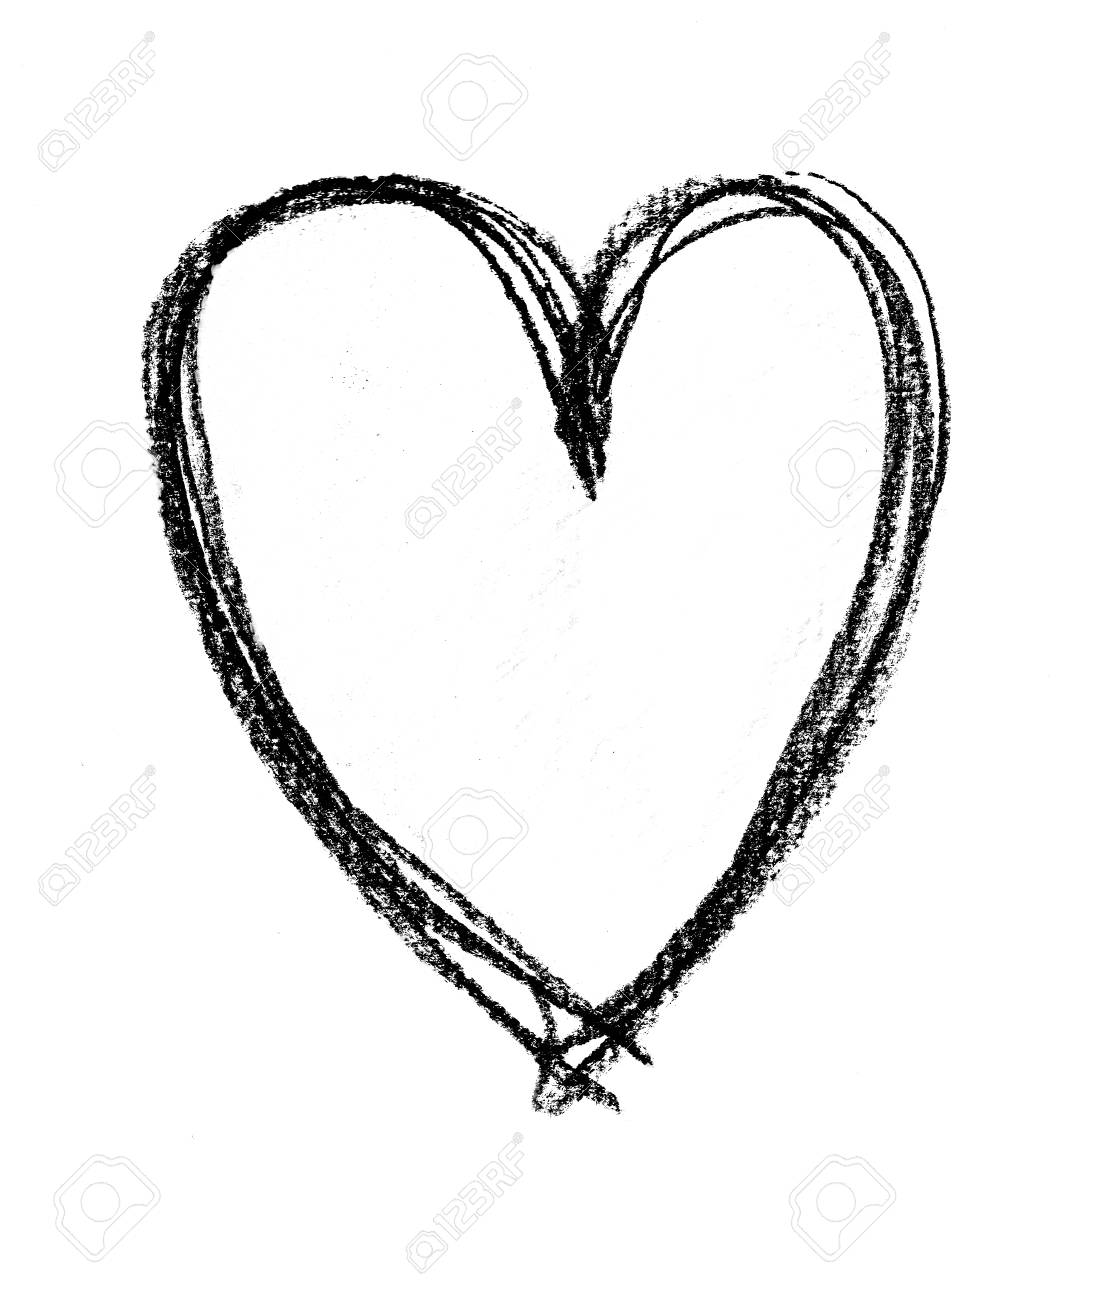 sketched outline of heart shape a heart shape outlined roughly rh 123rf com outlined heart copy and paste outline heart tattoo